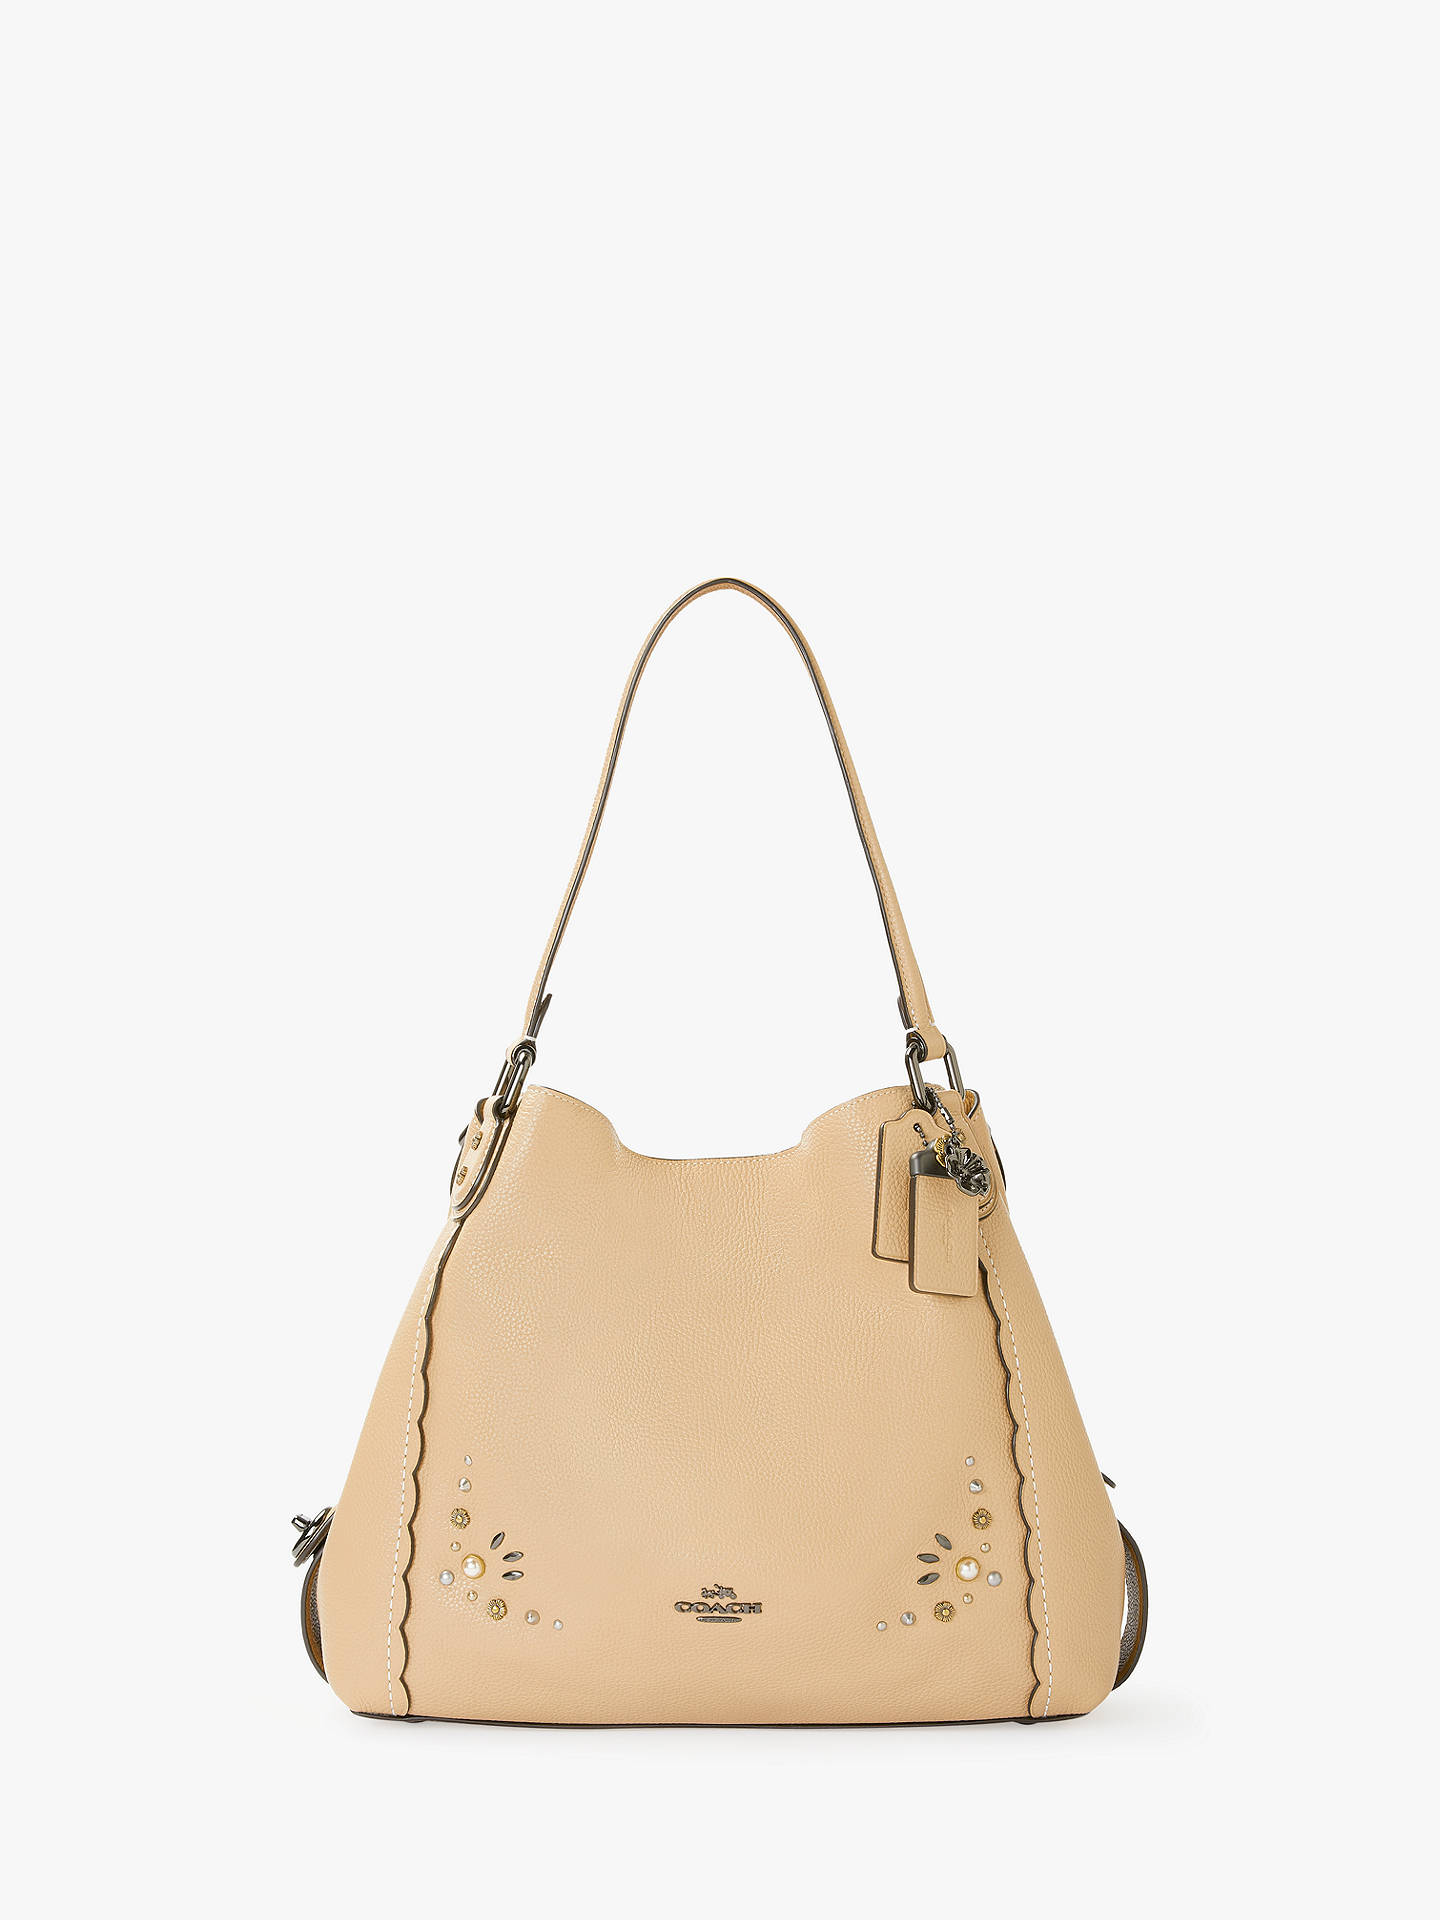 dfba9f2300b2 Coach Edie 31 Polished Pebble Leather Shoulder Bag at John Lewis ...